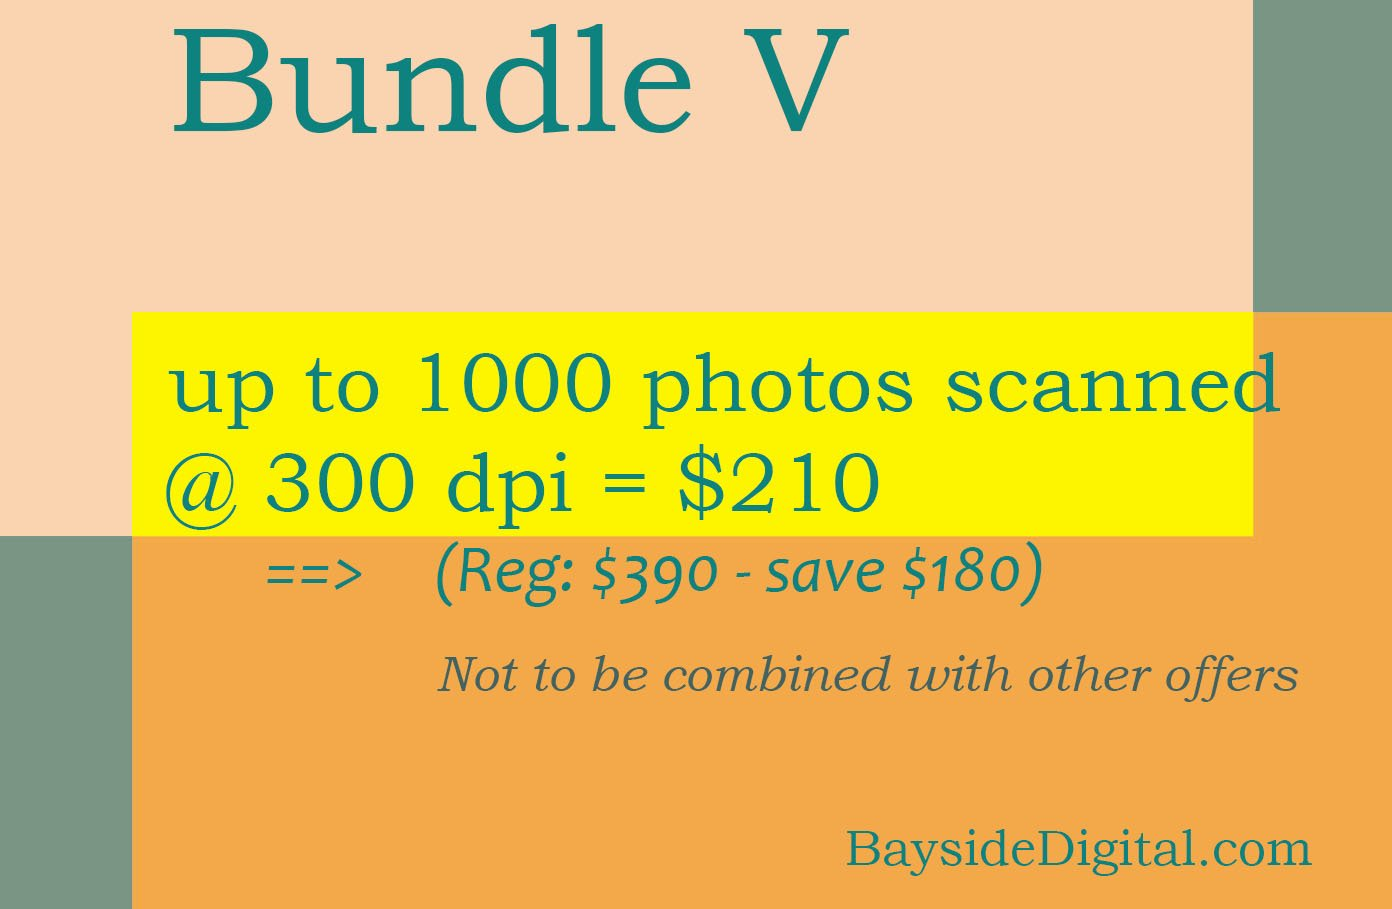 Photo digitizing scanning up 1000 photos scanned at 300 dpi SPECIAL SALE